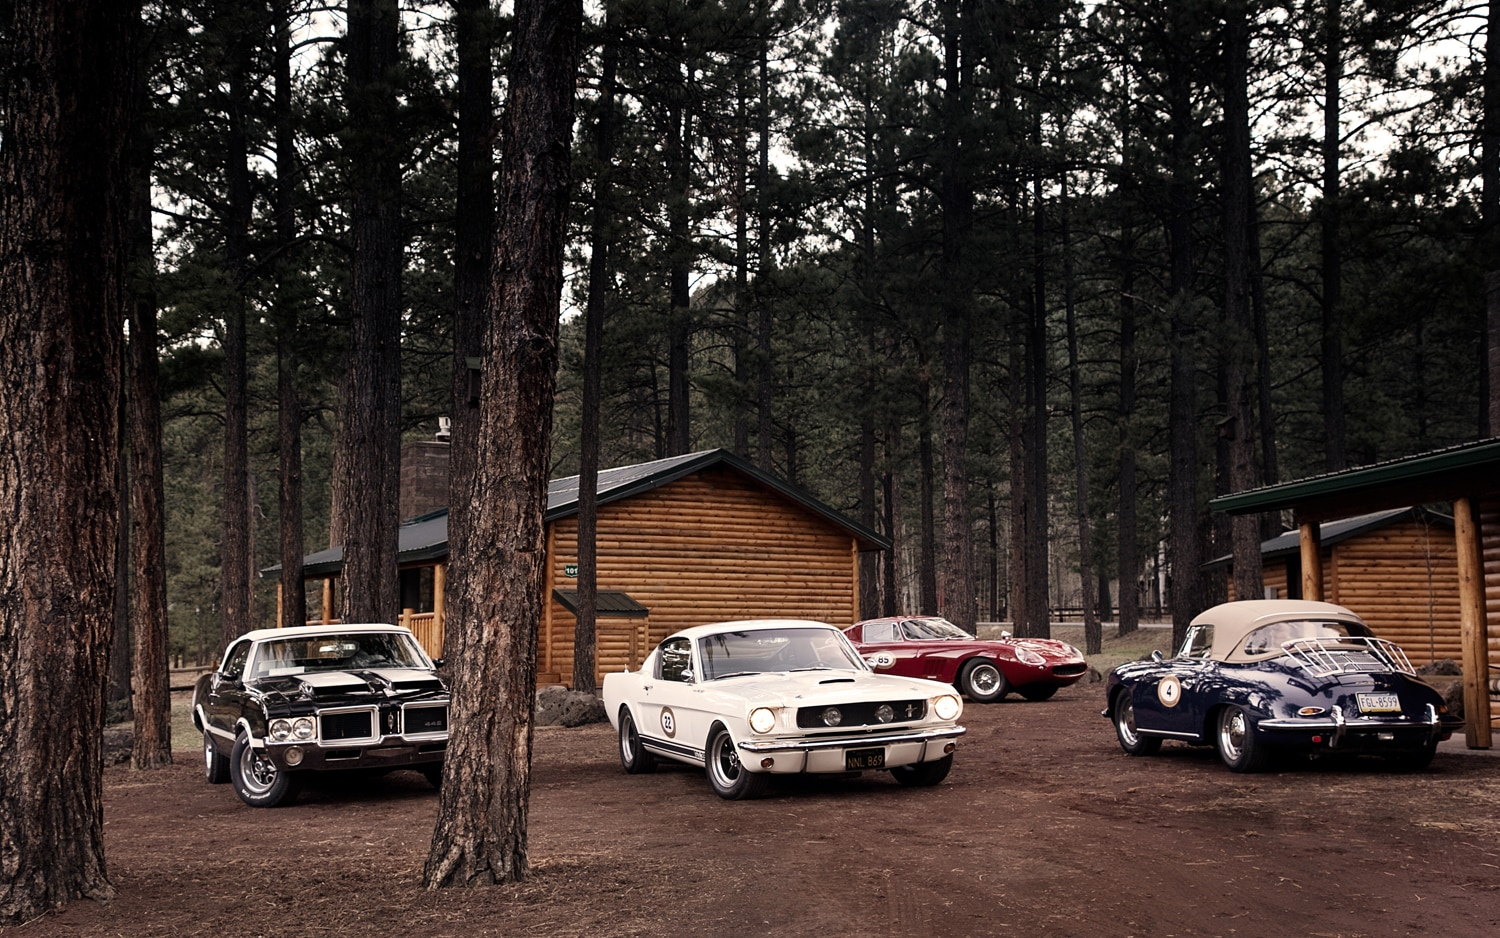 Cool Wallpapers Cars American Muscle Running The Copperstate 1000 Road Rally Automobile Magazine